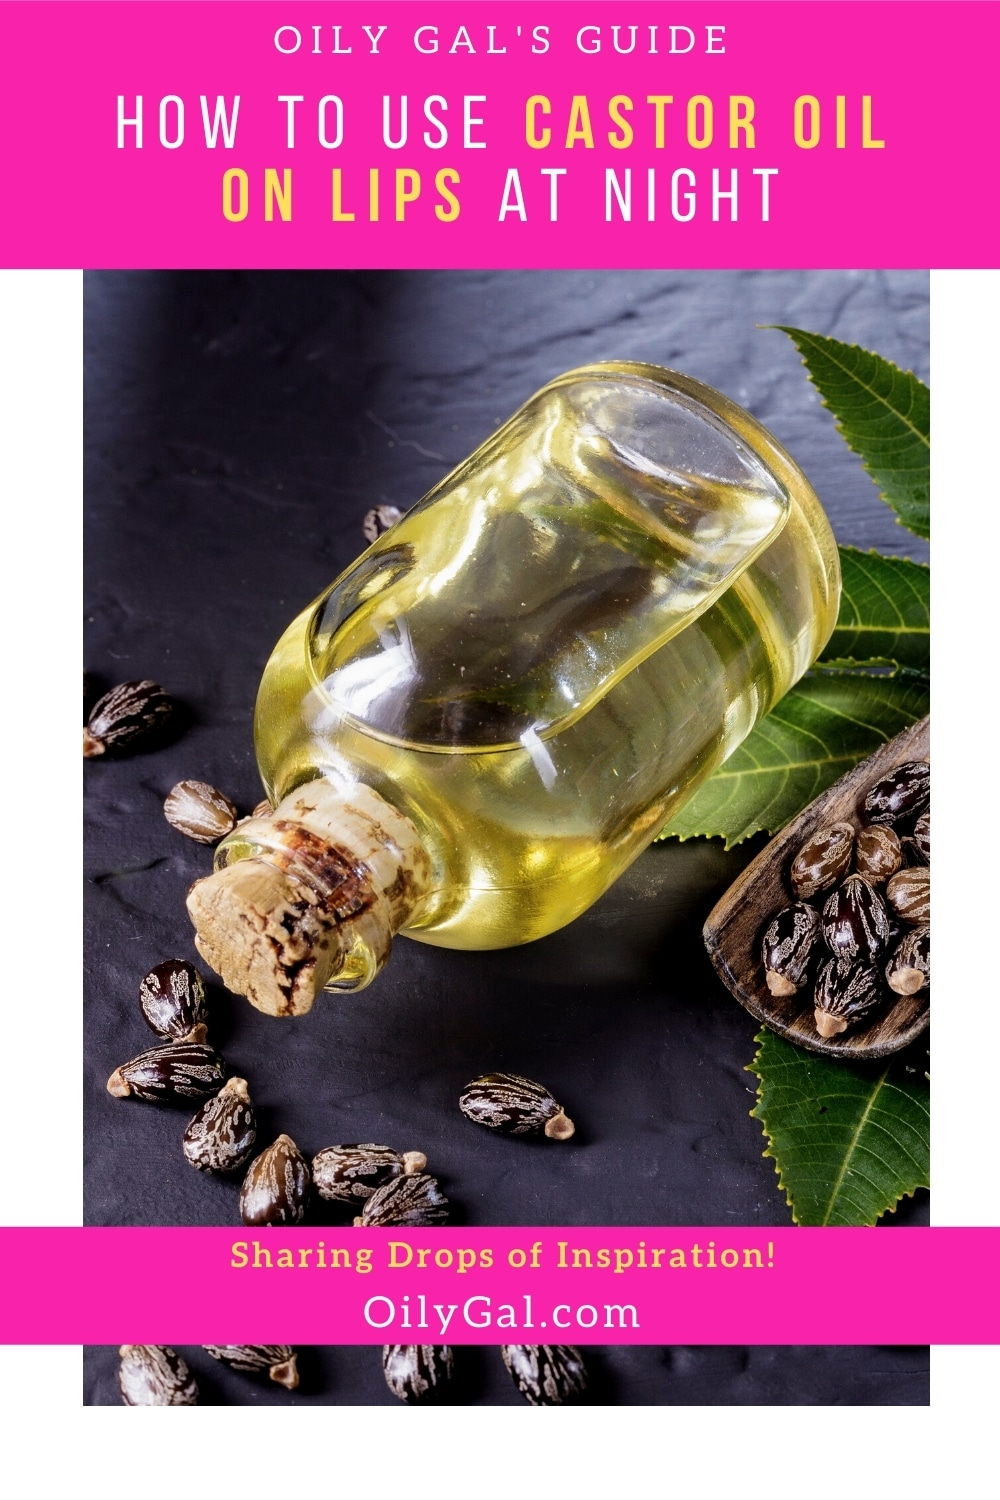 How to Use Castor Oil on Lips at Night